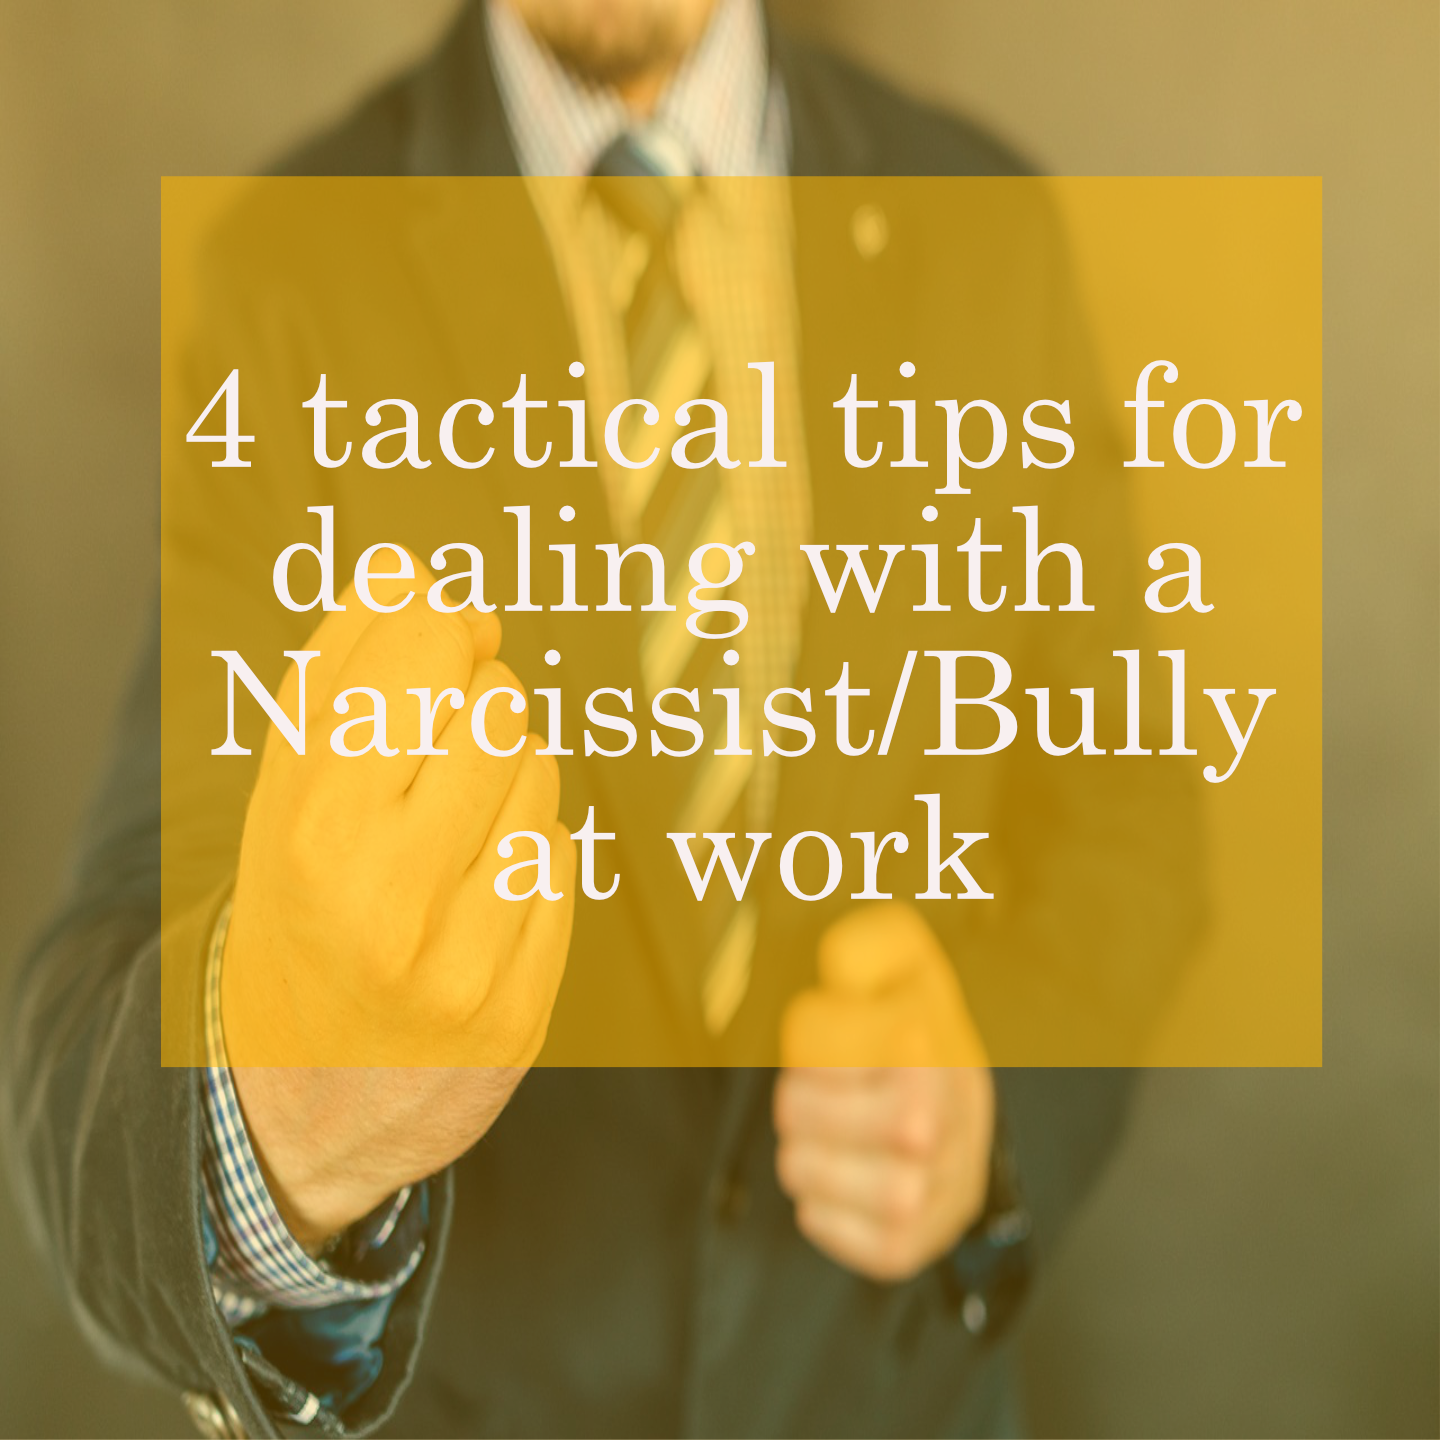 4 Tactical Tips for dealing with a Narcissist/Bully at work